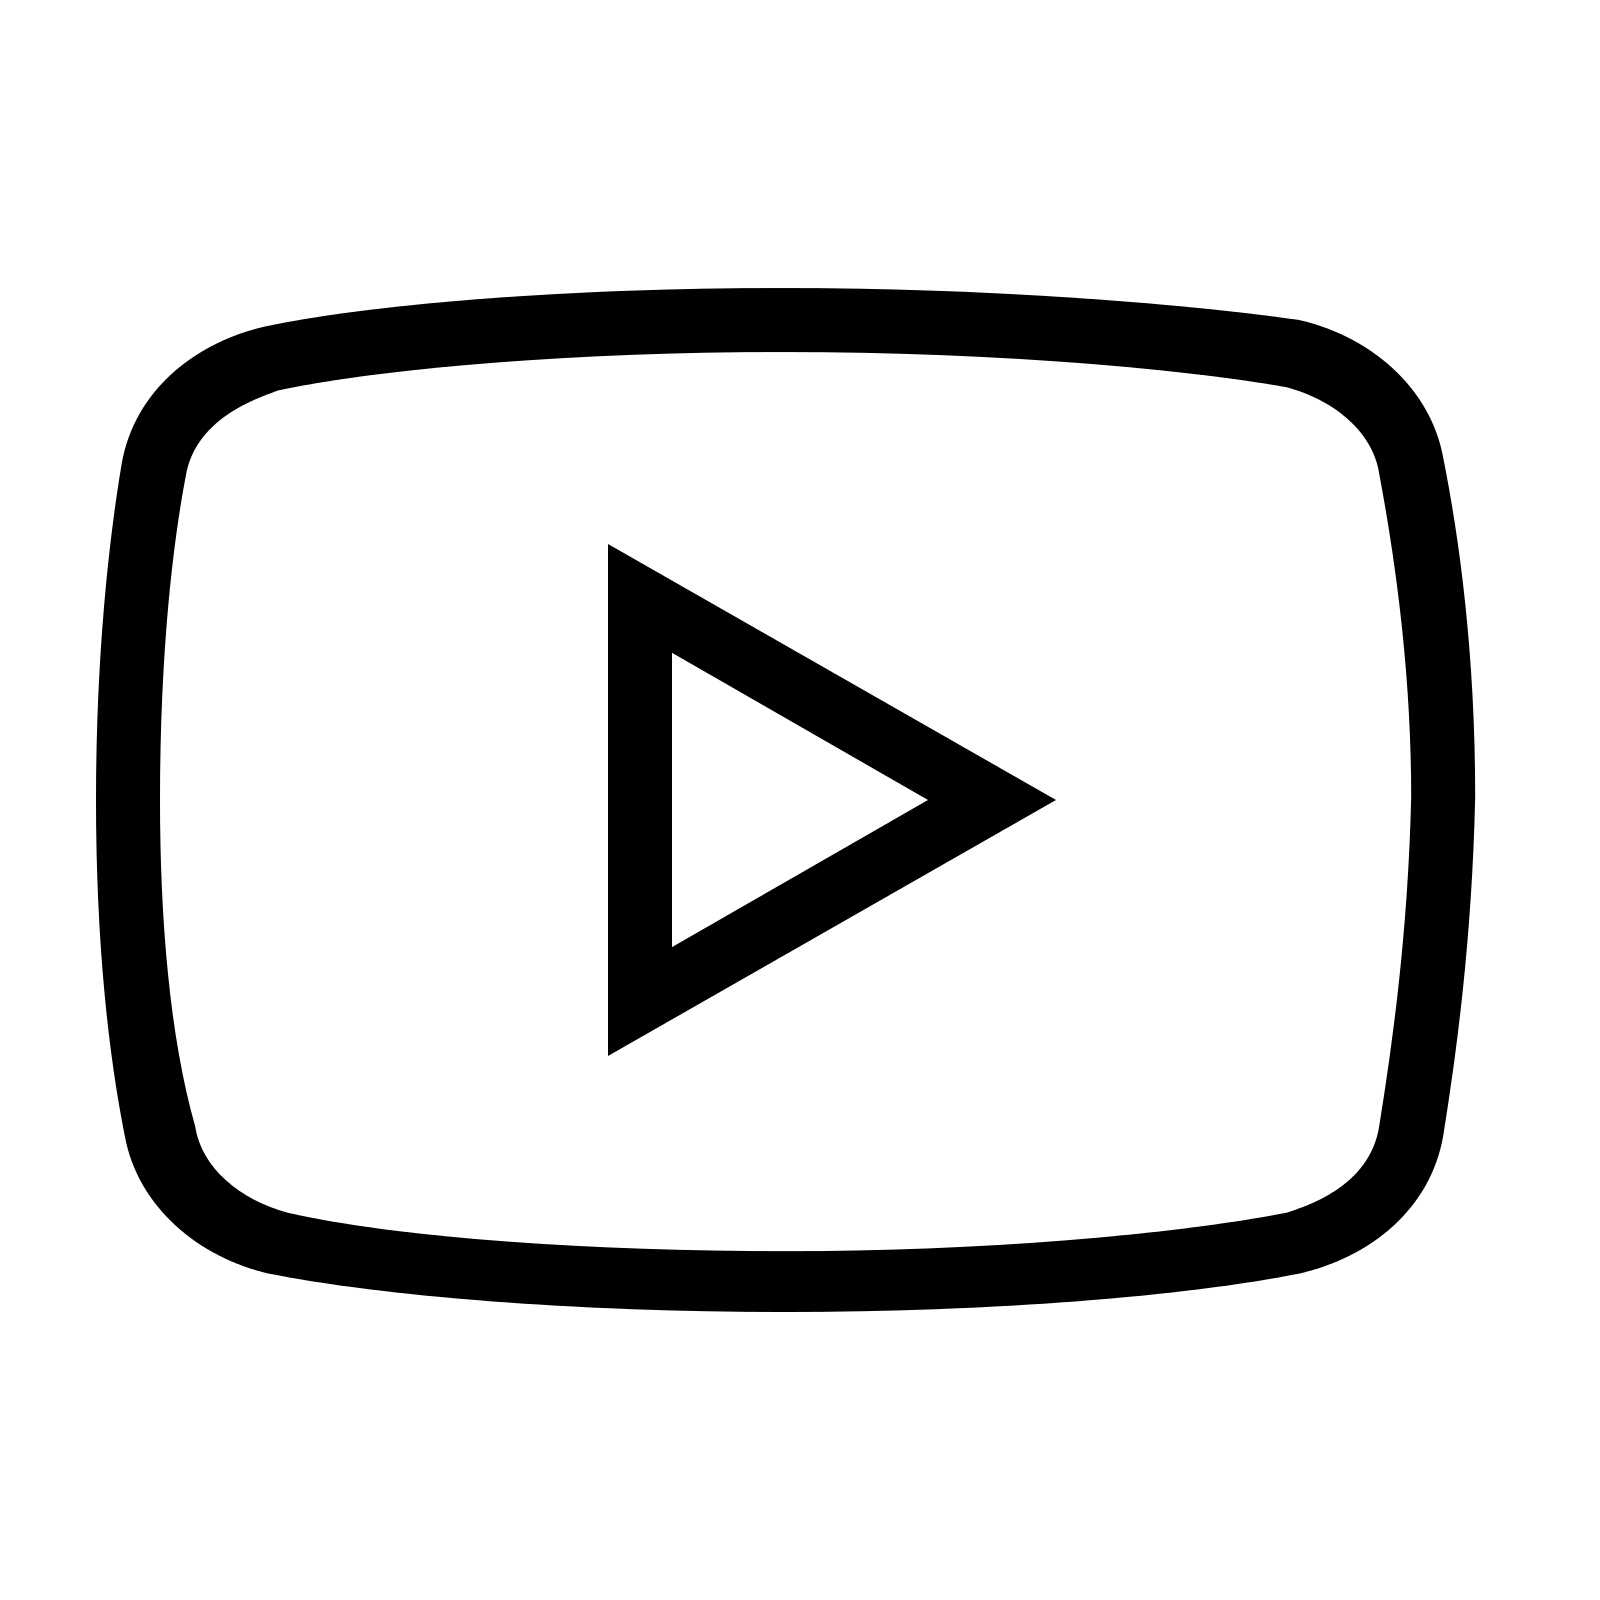 Youtube clipart black, Youtube black Transparent FREE for